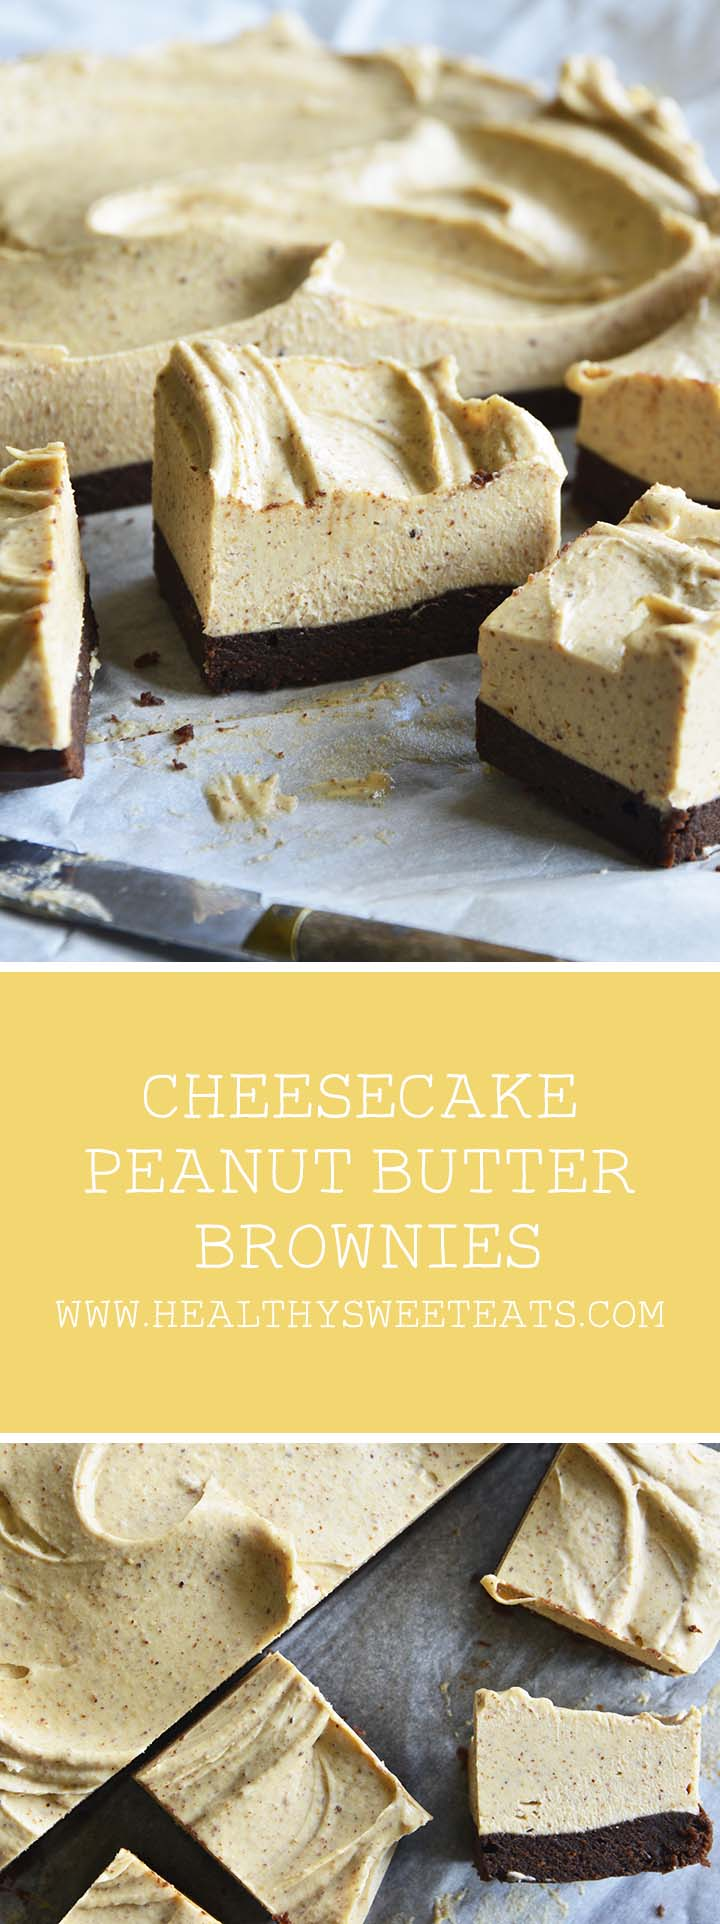 Cheesecake Peanut Butter Brownies Pin